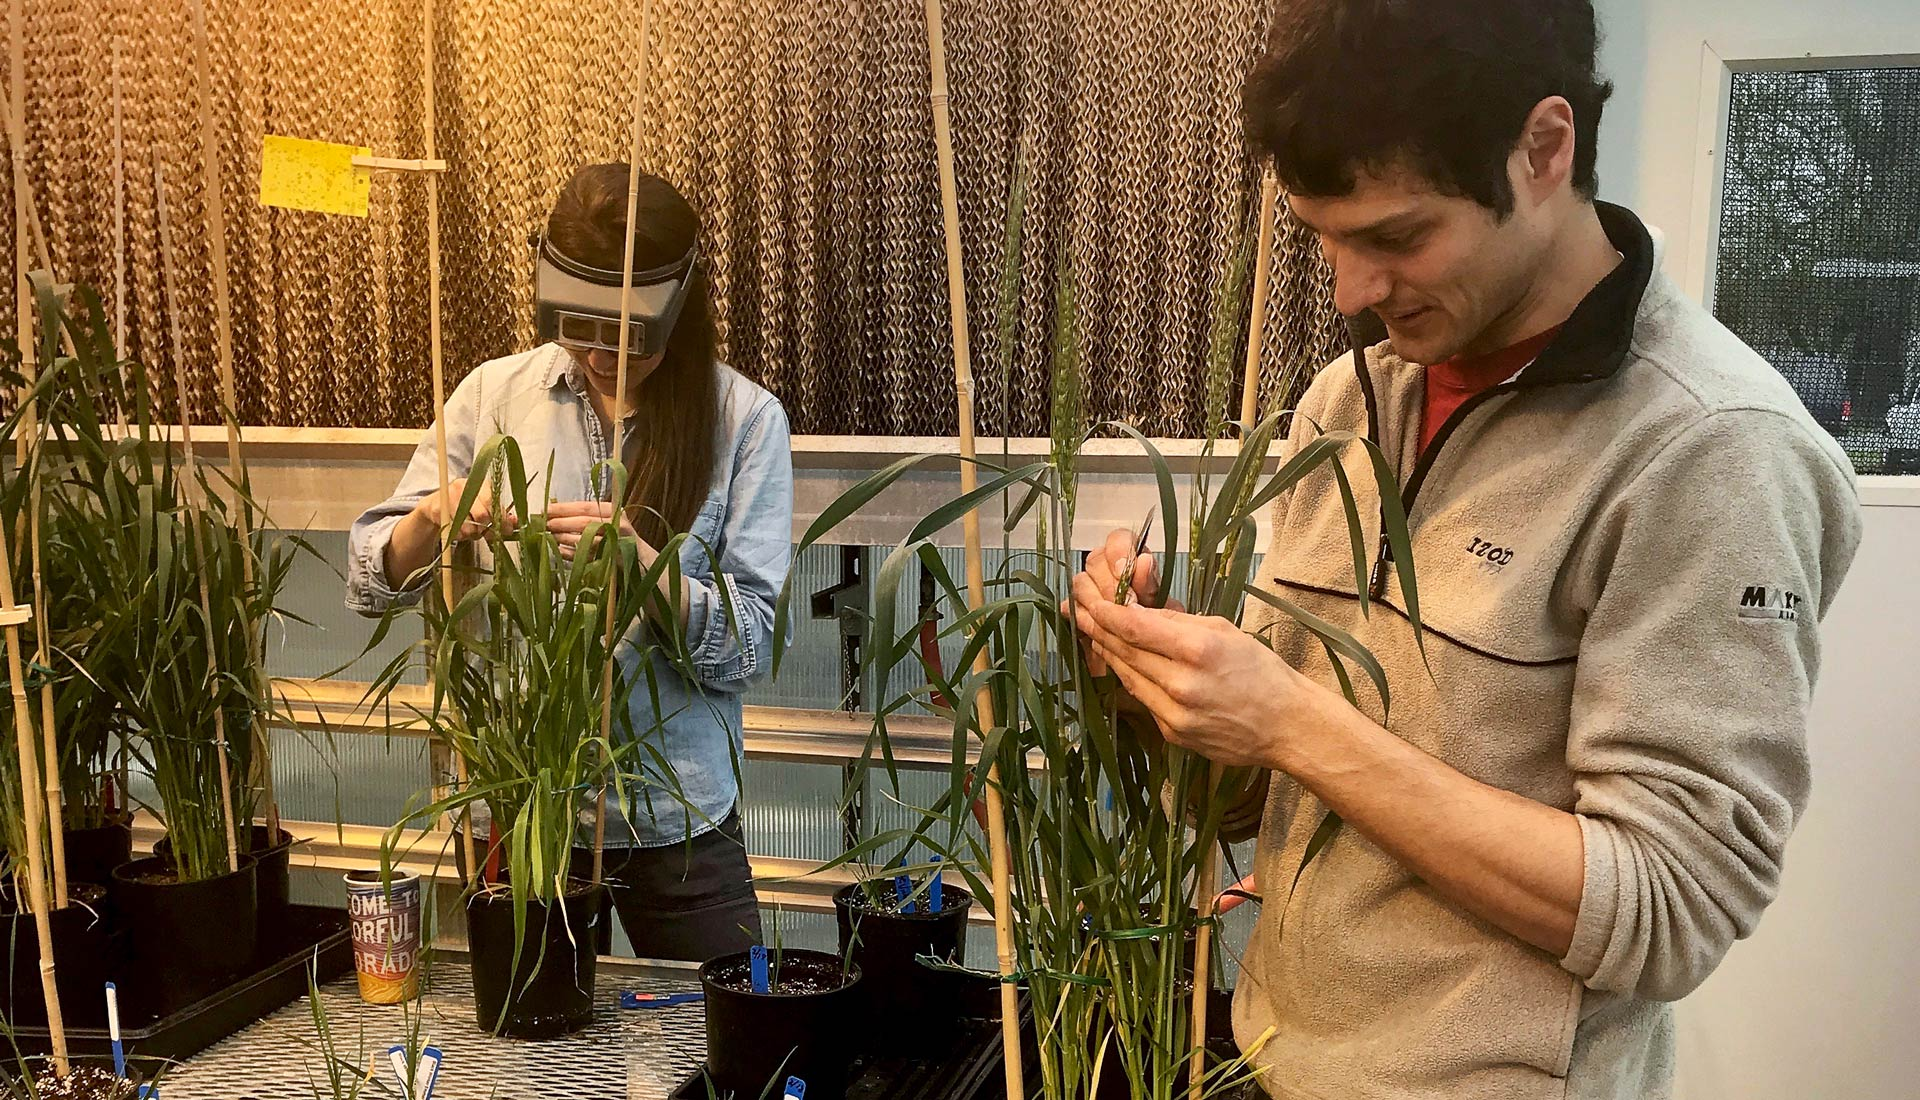 Young man and woman harvest grain pollen in greenhouse